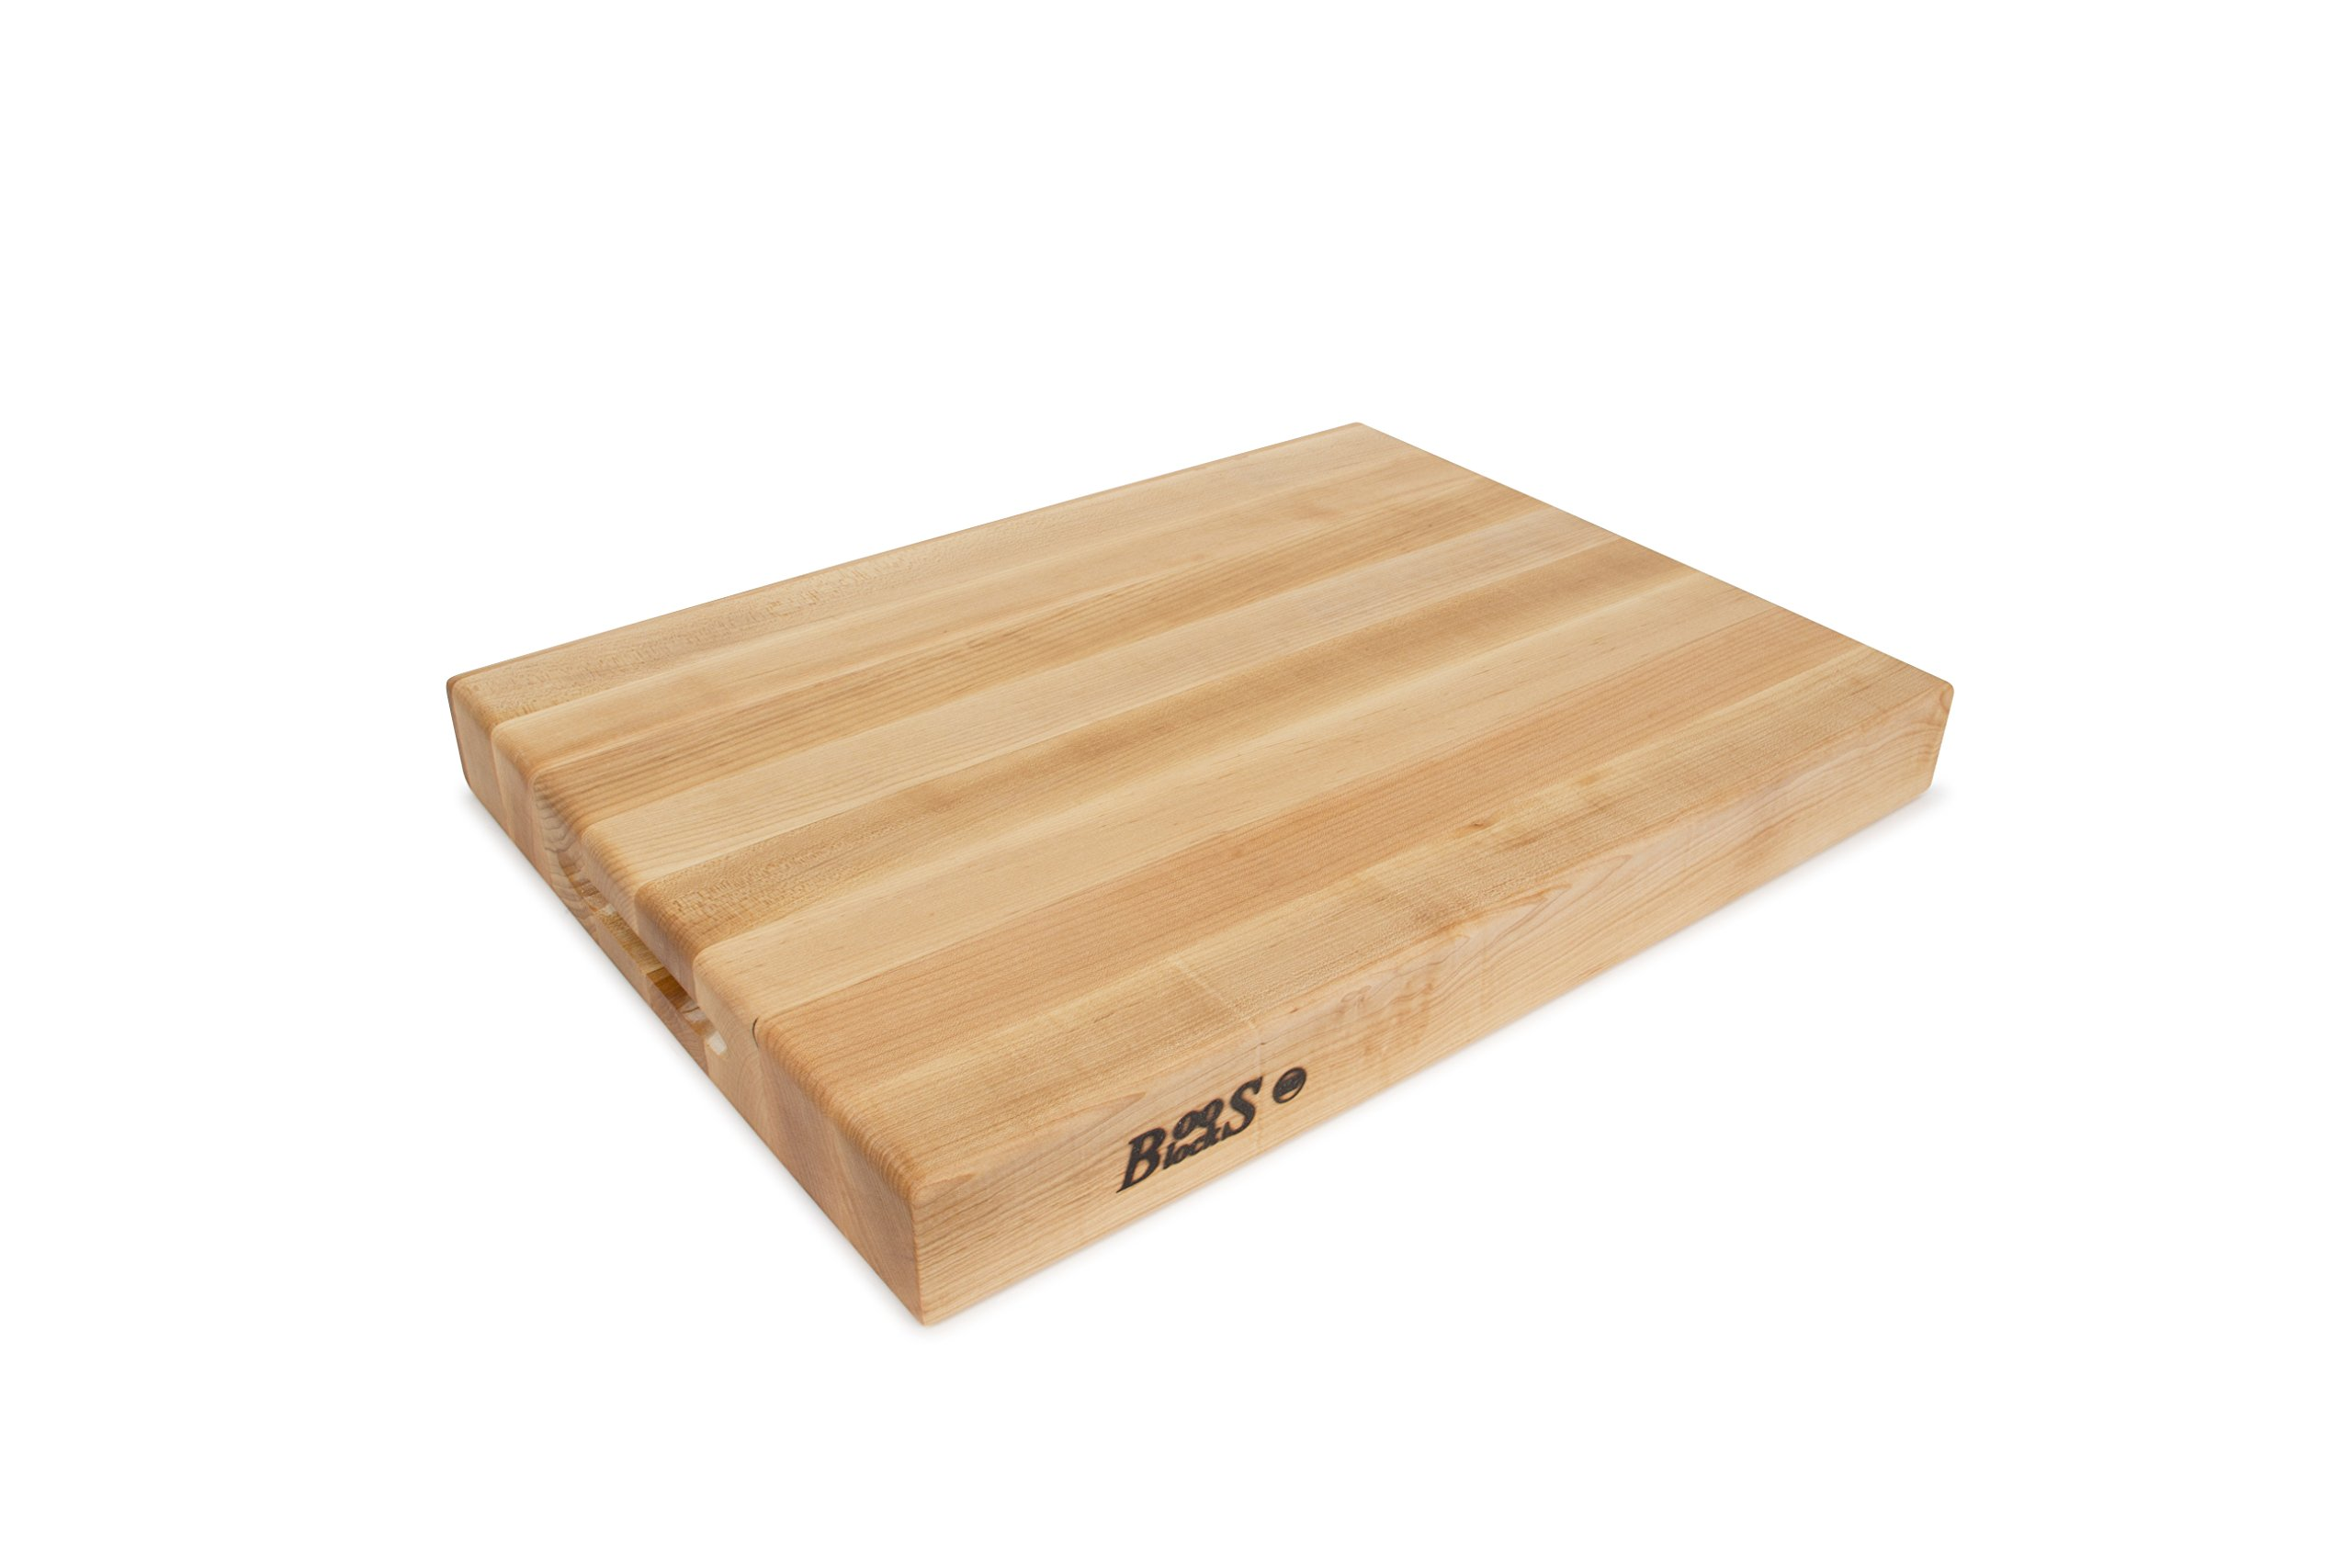 John Boos RA02 Maple Wood Edge Grain Reversible Cutting Board, 20 Inches x 15 Inches x 2.25 Inches